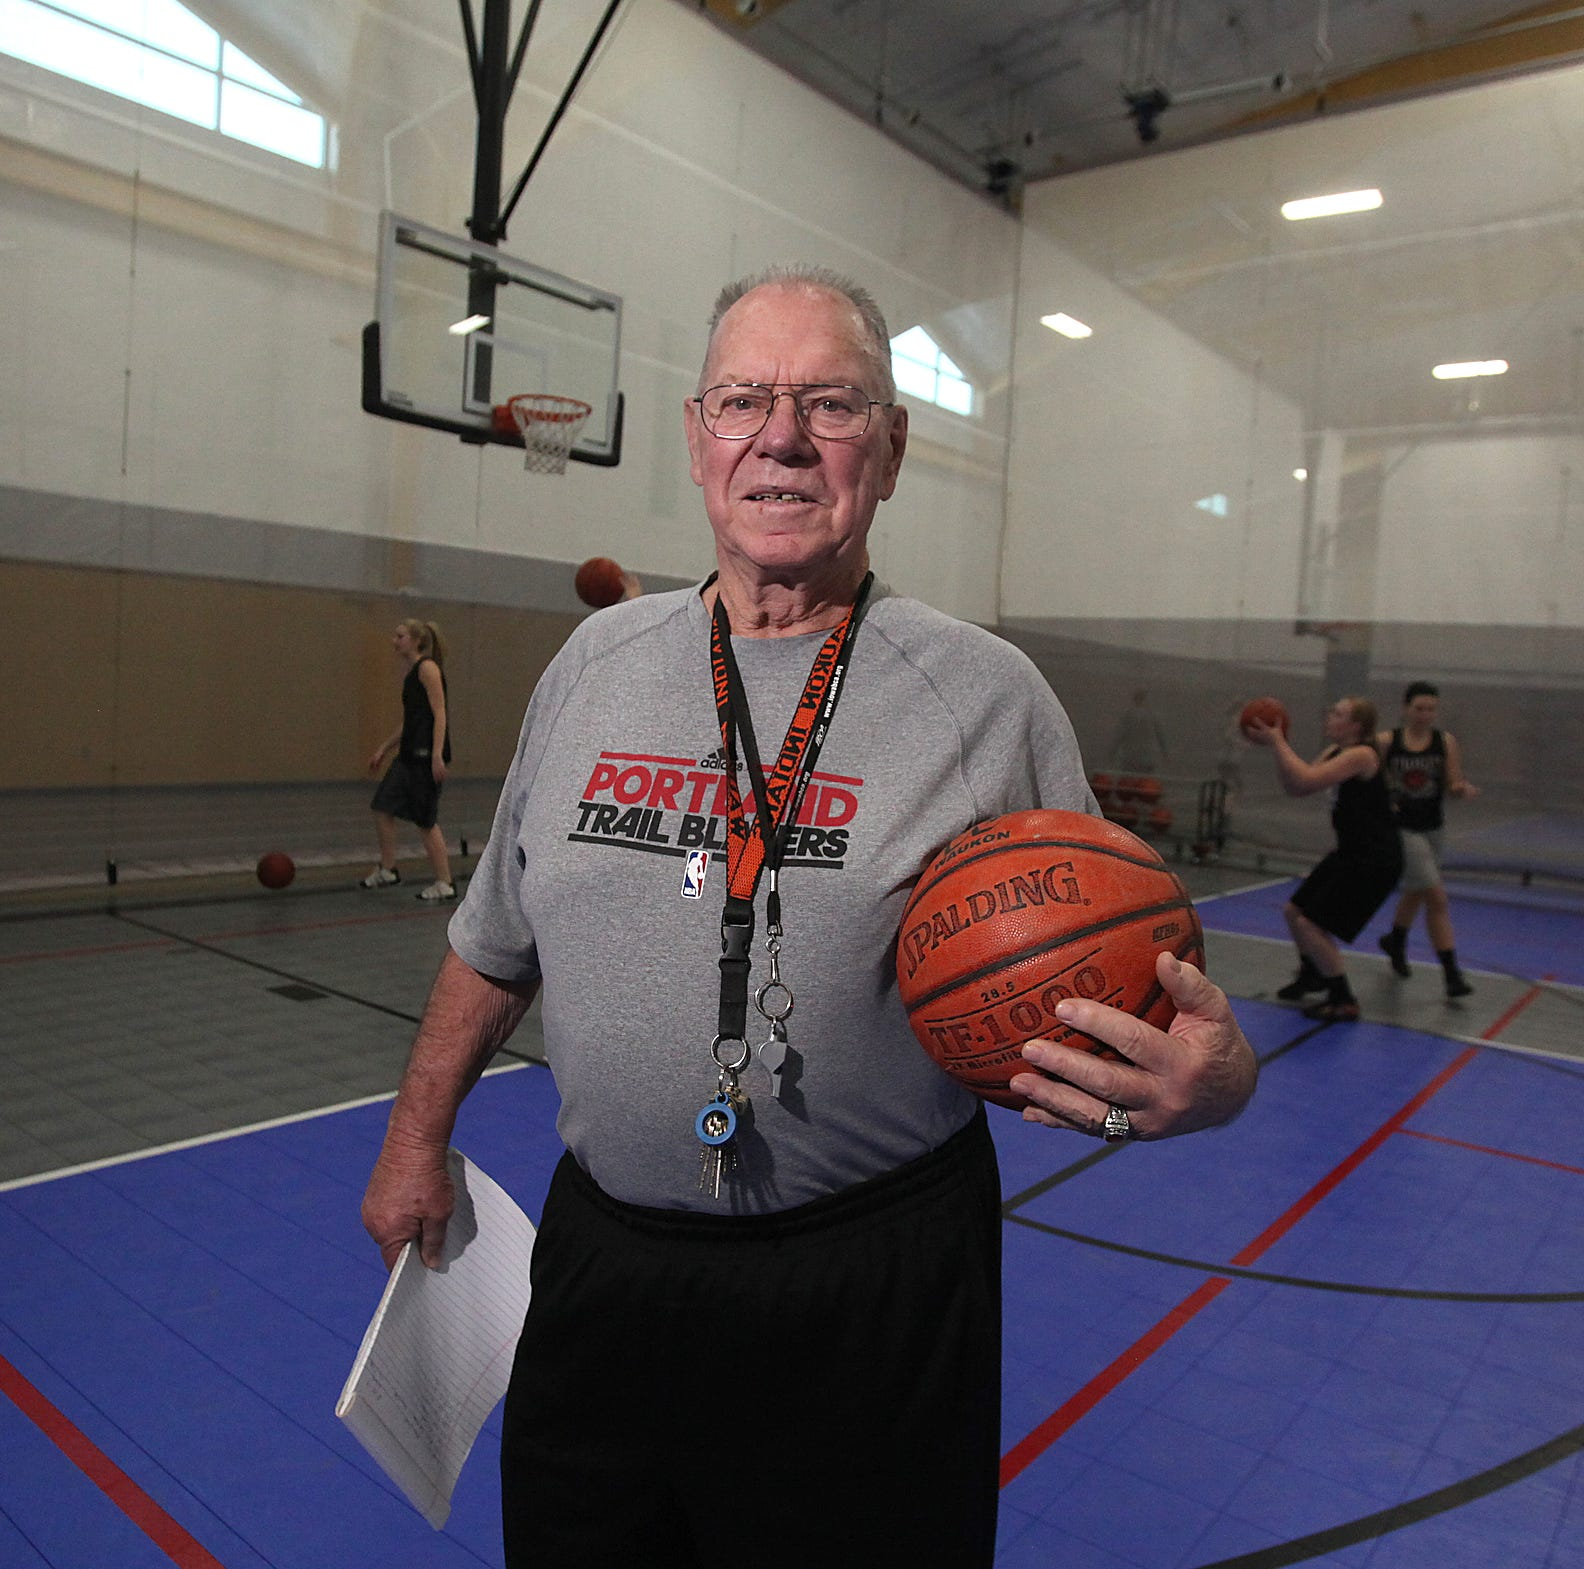 'Basketball Jesus': Iowa's winningest girls' basketball coach Gene Klinge dies